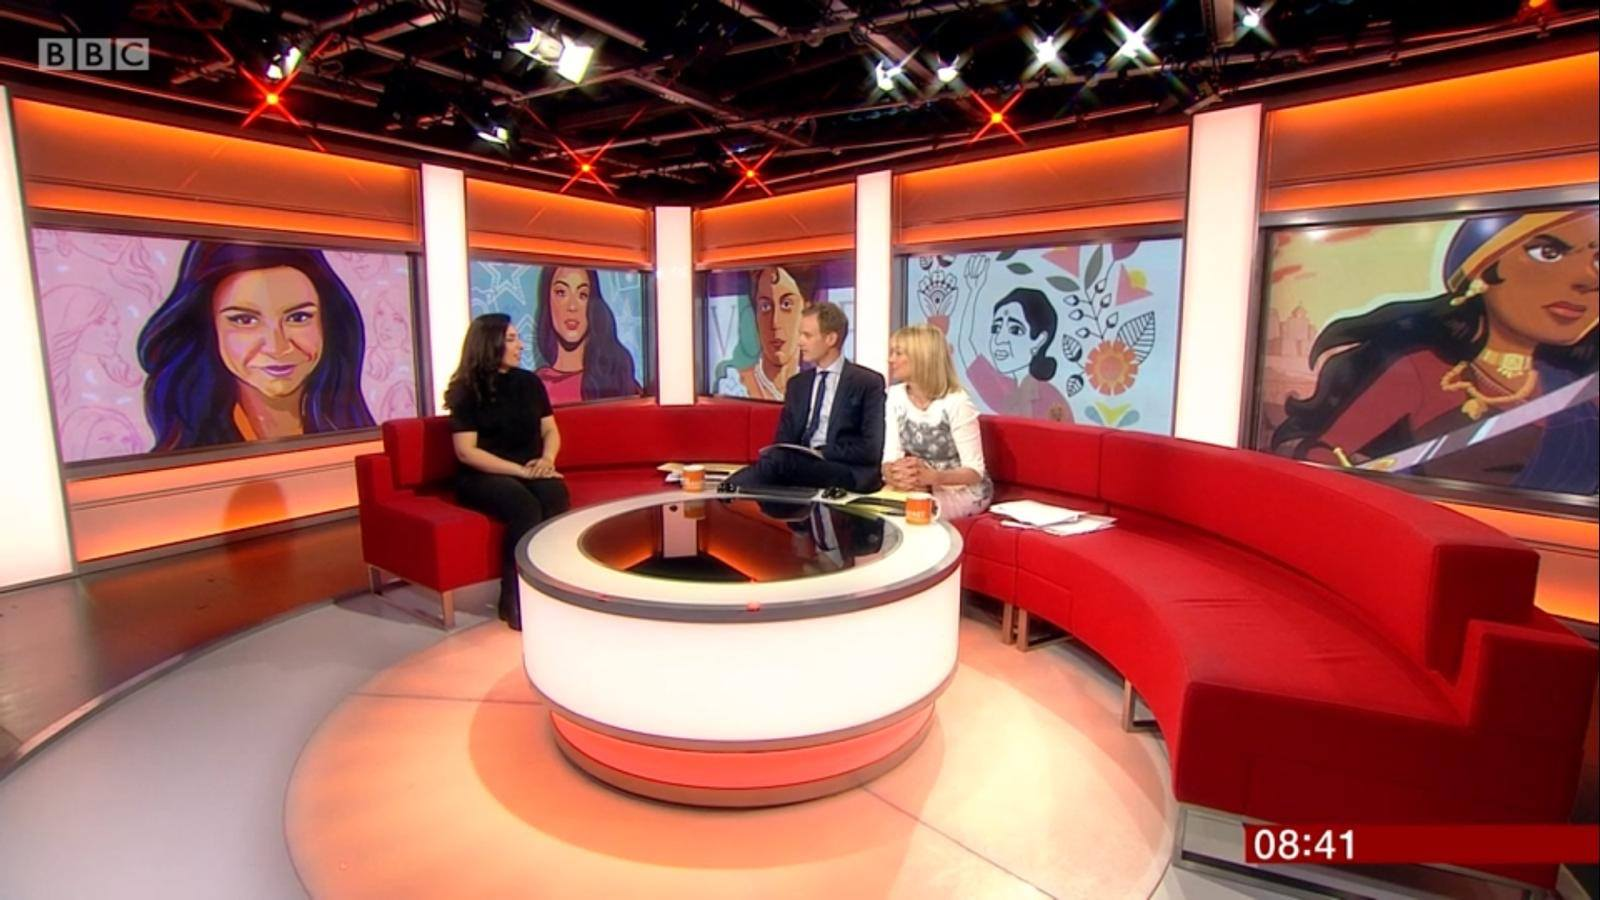 Raj Kaur Khaira on the BBC Breakfast Show, speaking about the book.